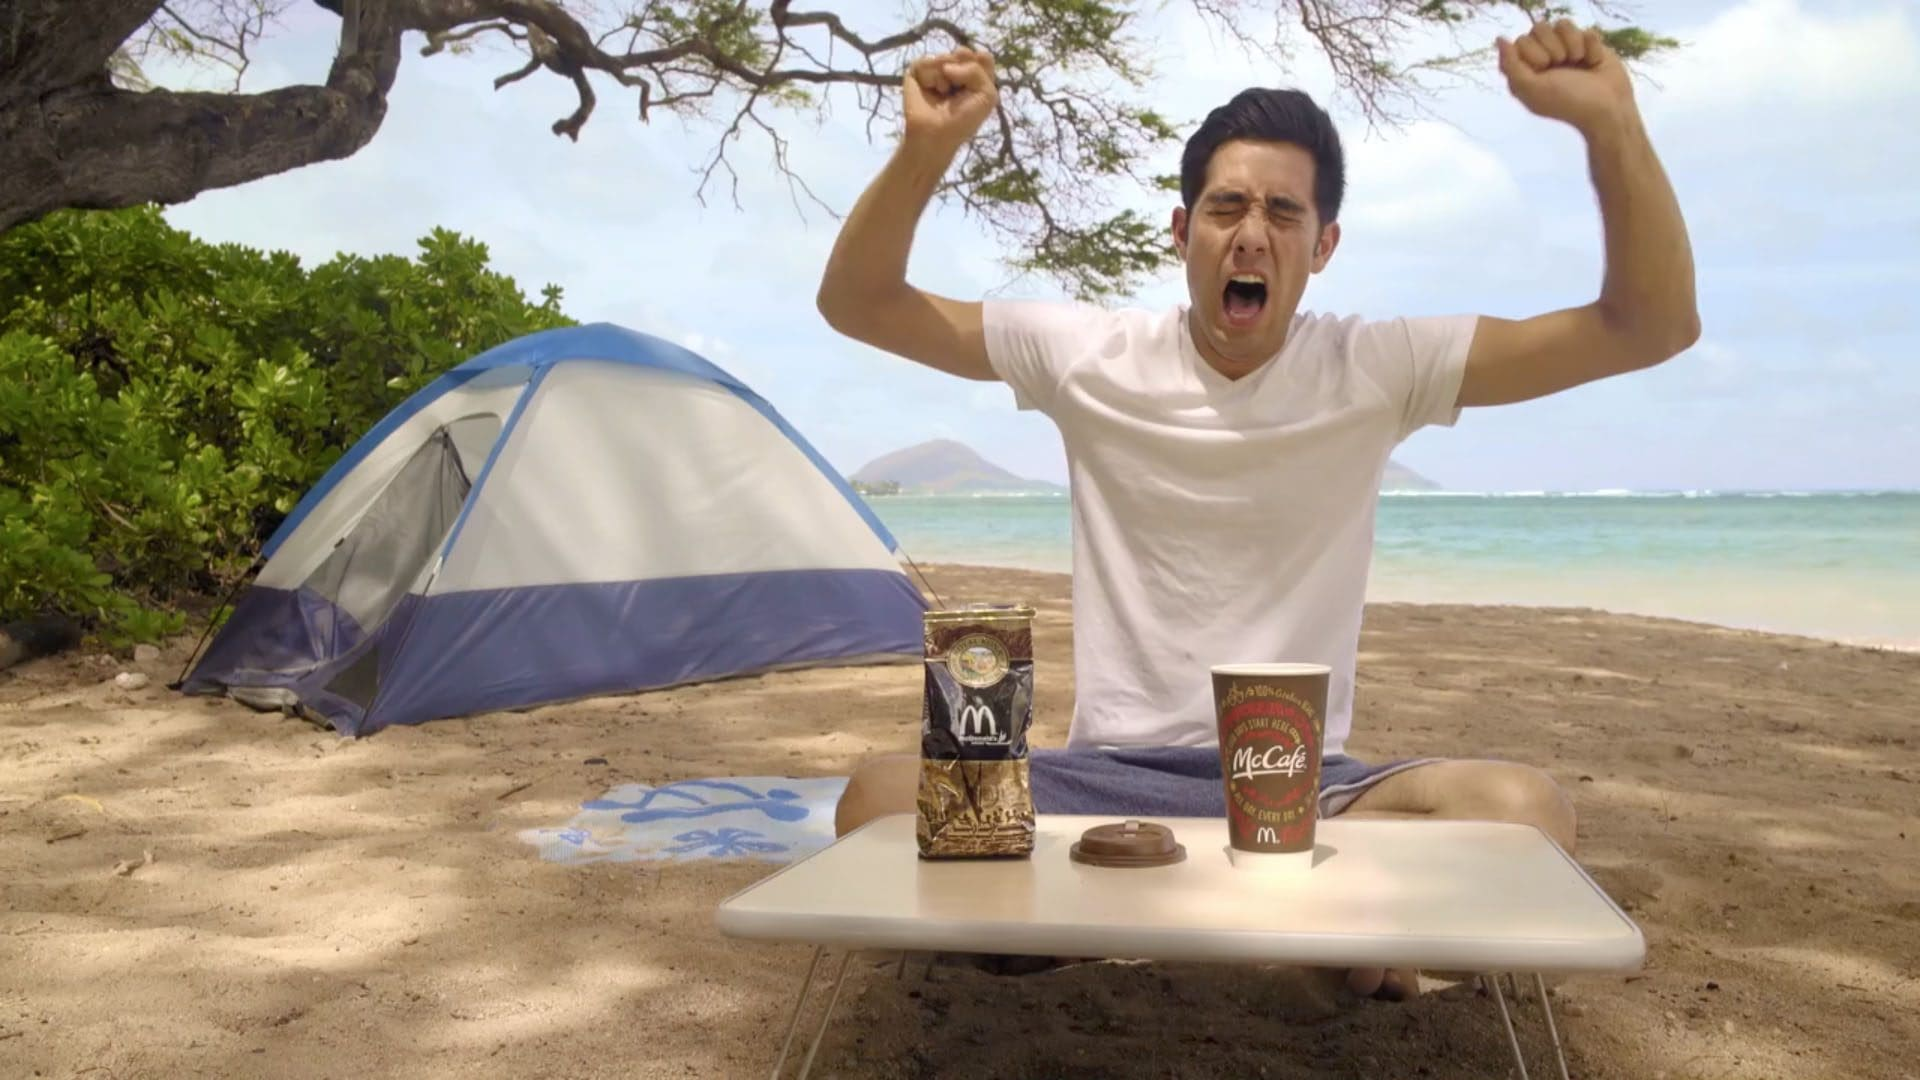 McDonald's of Hawaii - Amazing Ingredients Campaign - How Zach King starts his mornings